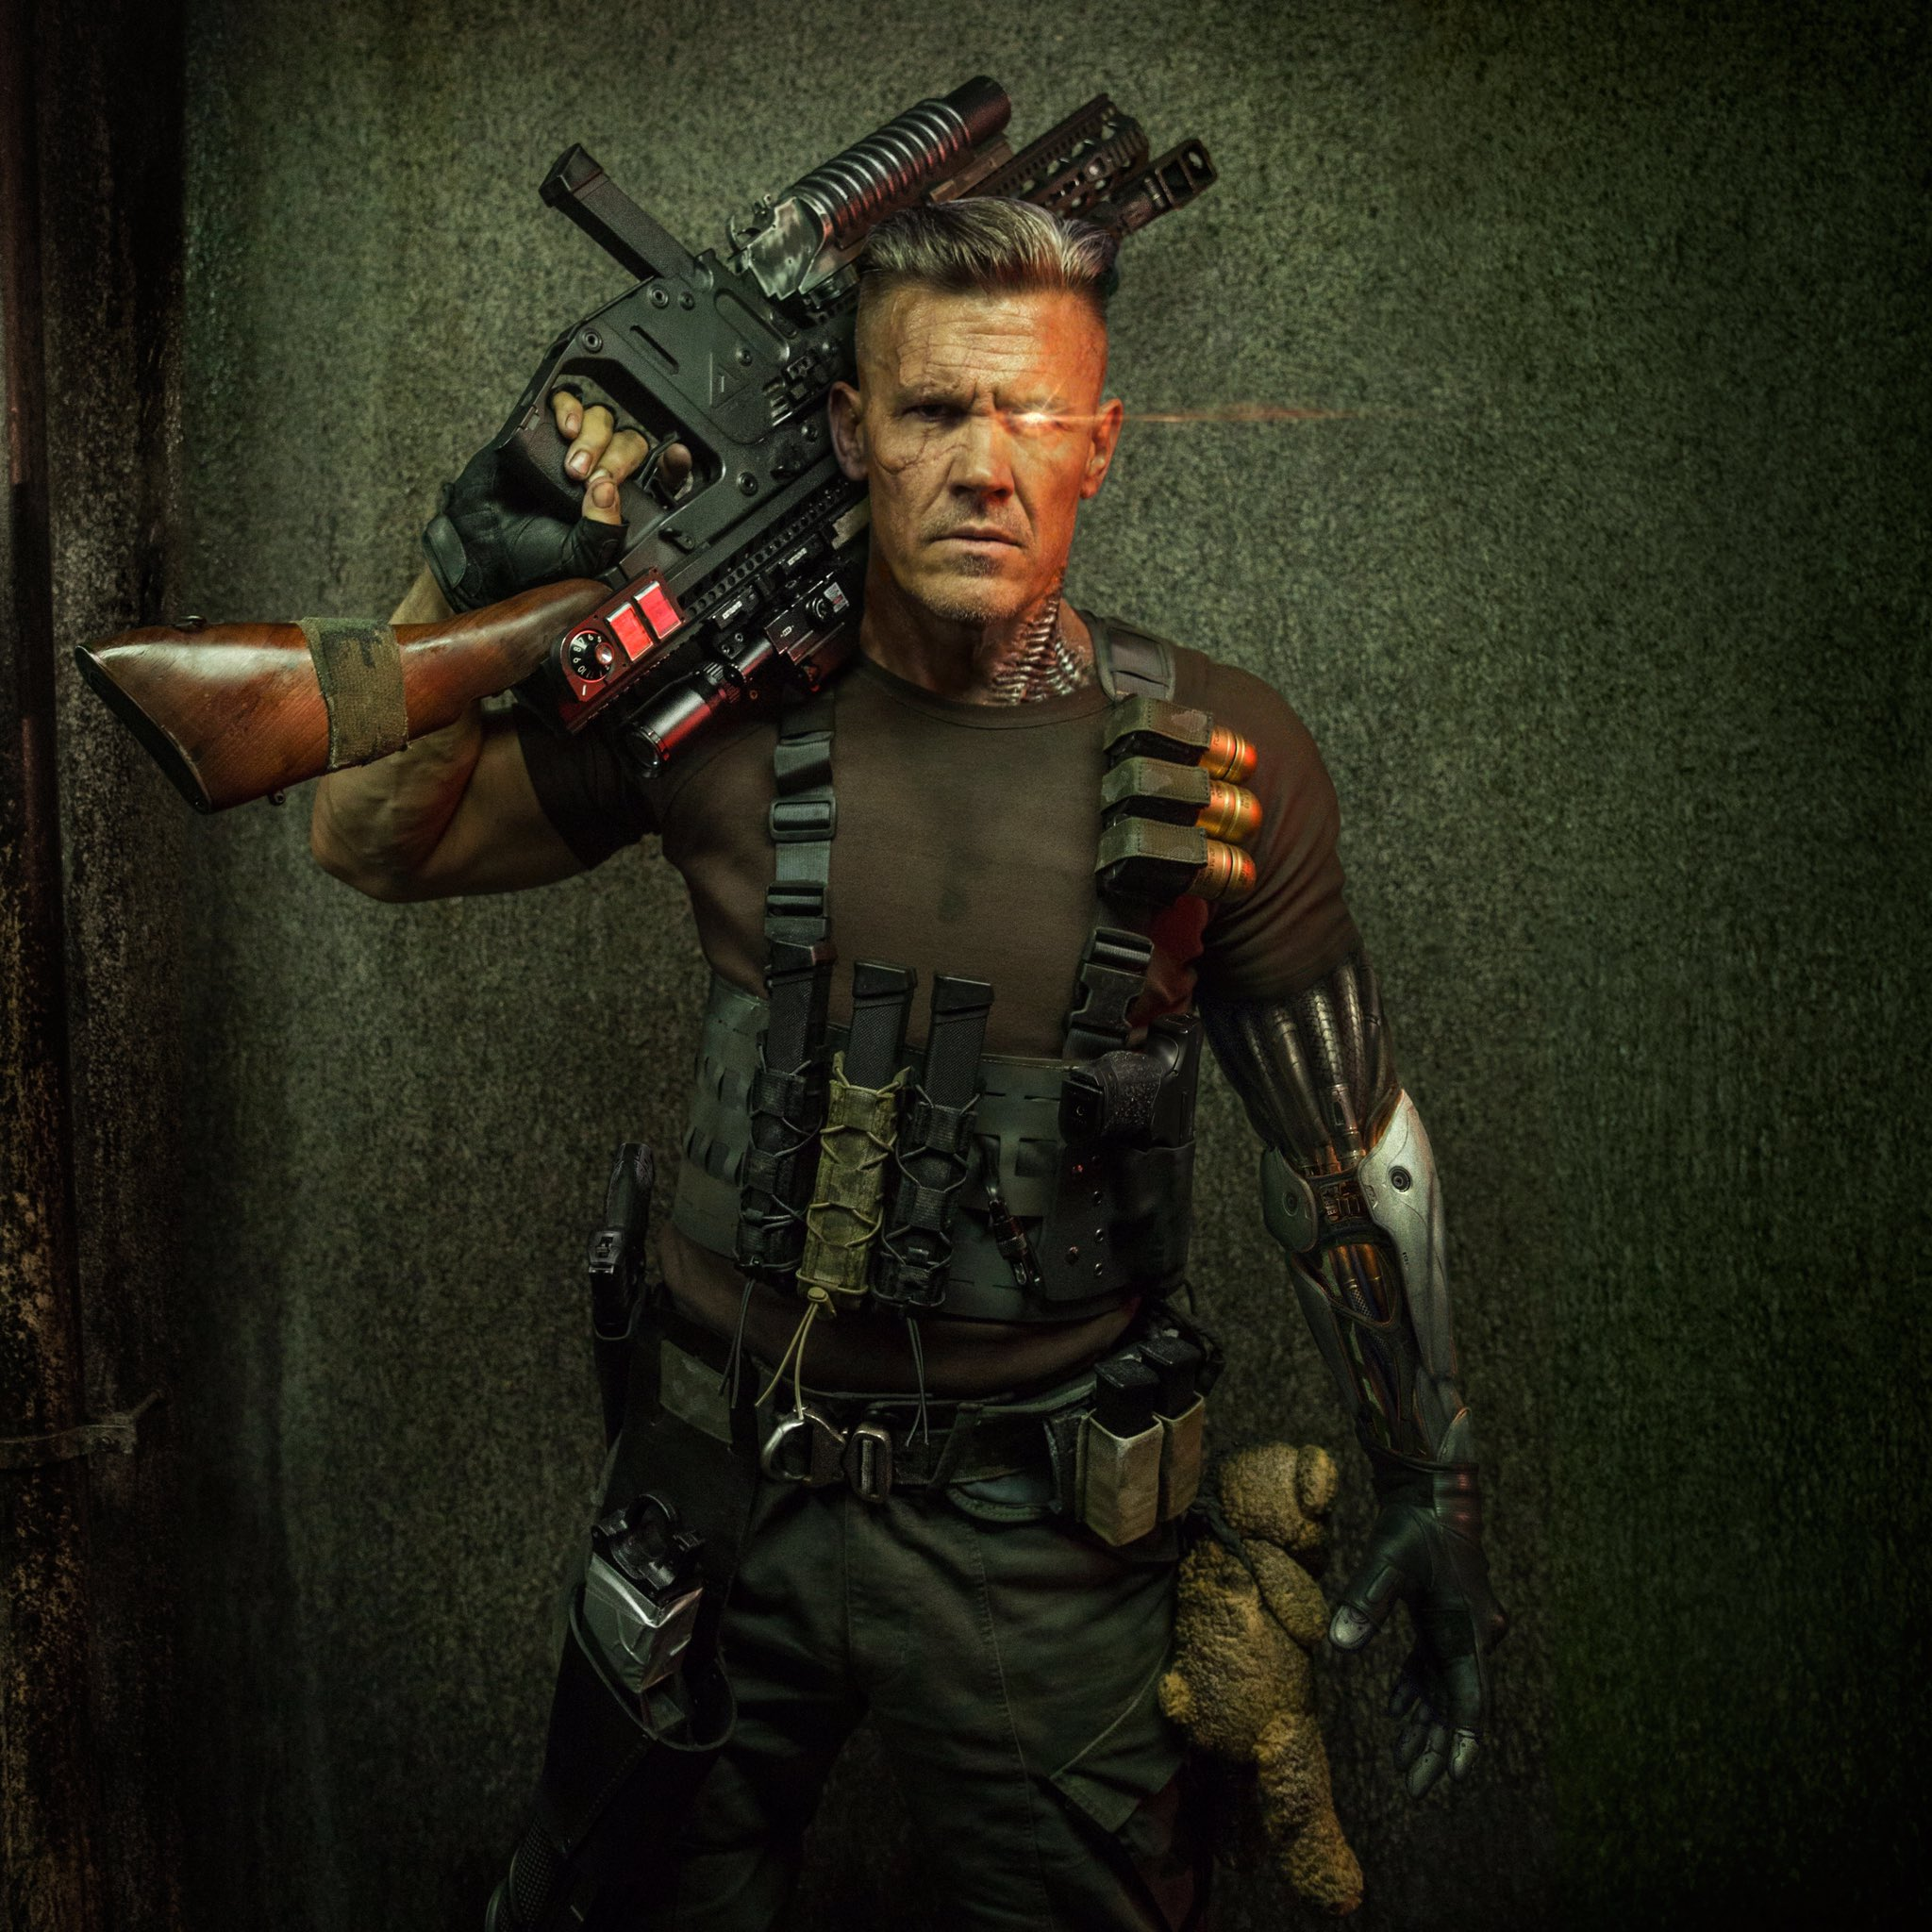 Josh Brolin as Cable